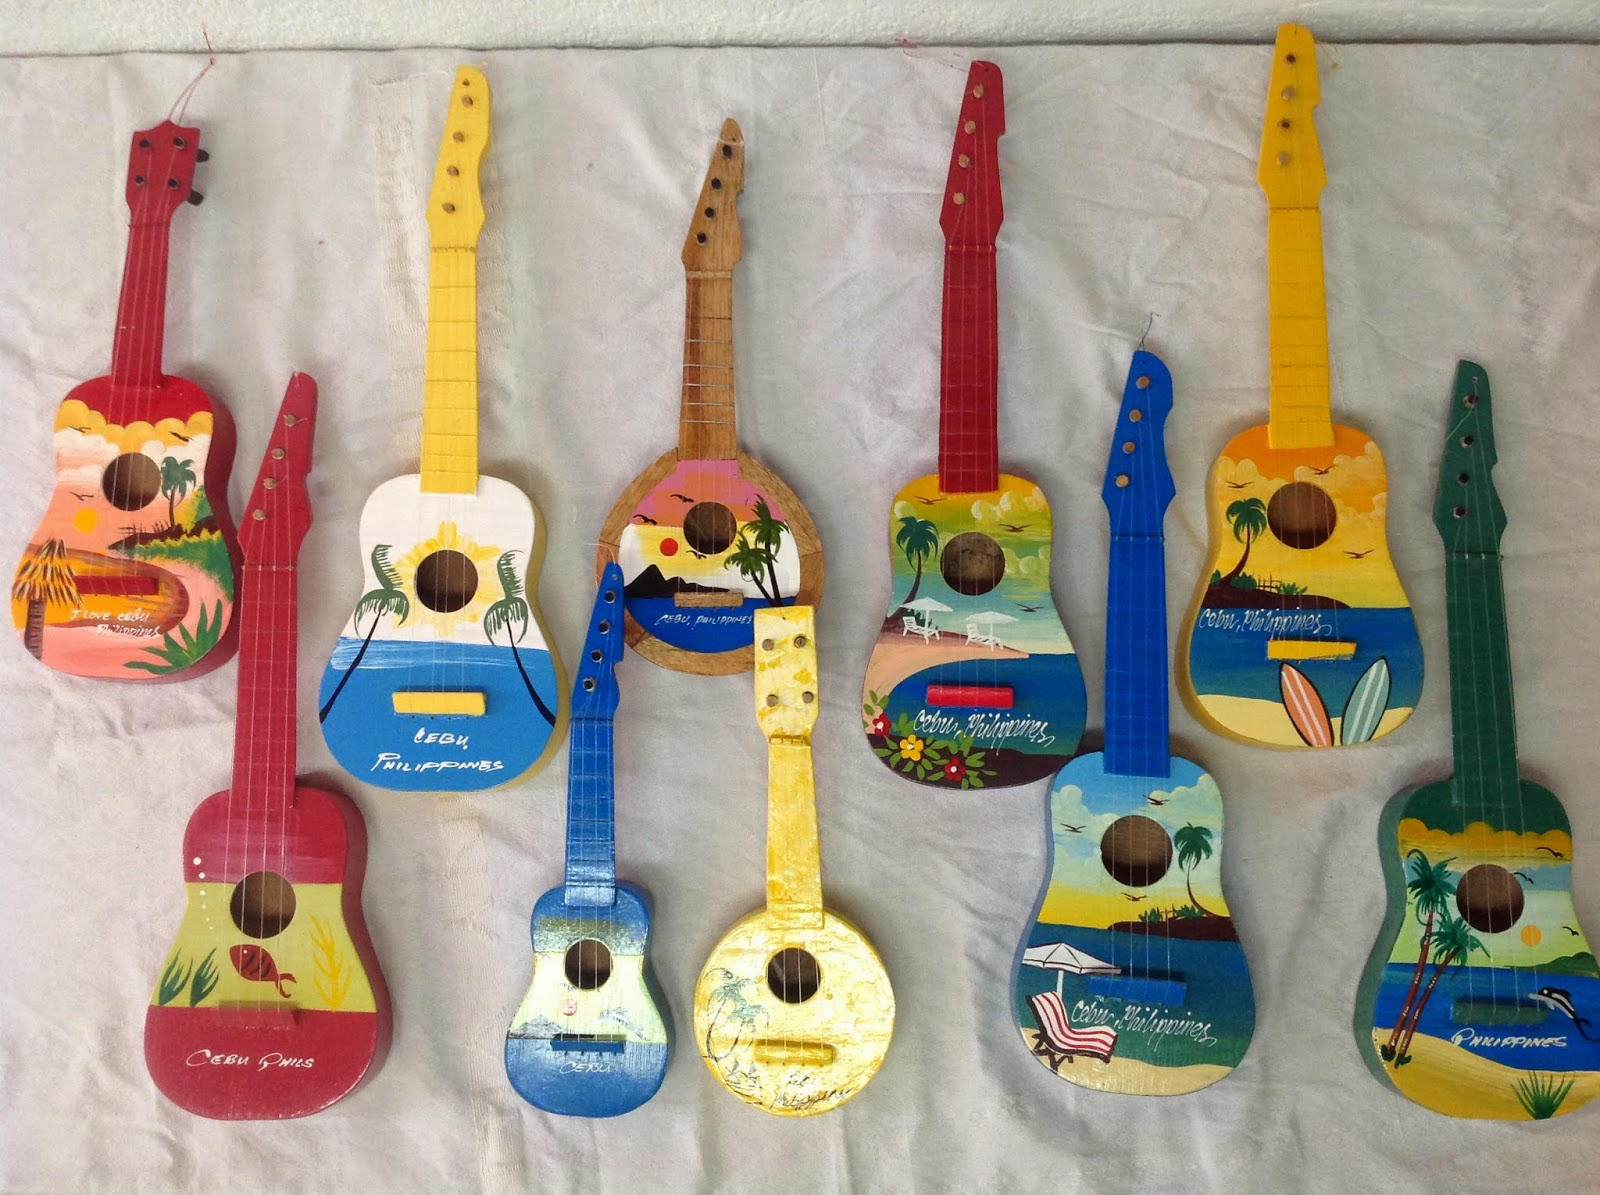 Crib for sale in cebu - Cebu Toy Ukuleles Found Contaminated With Lead